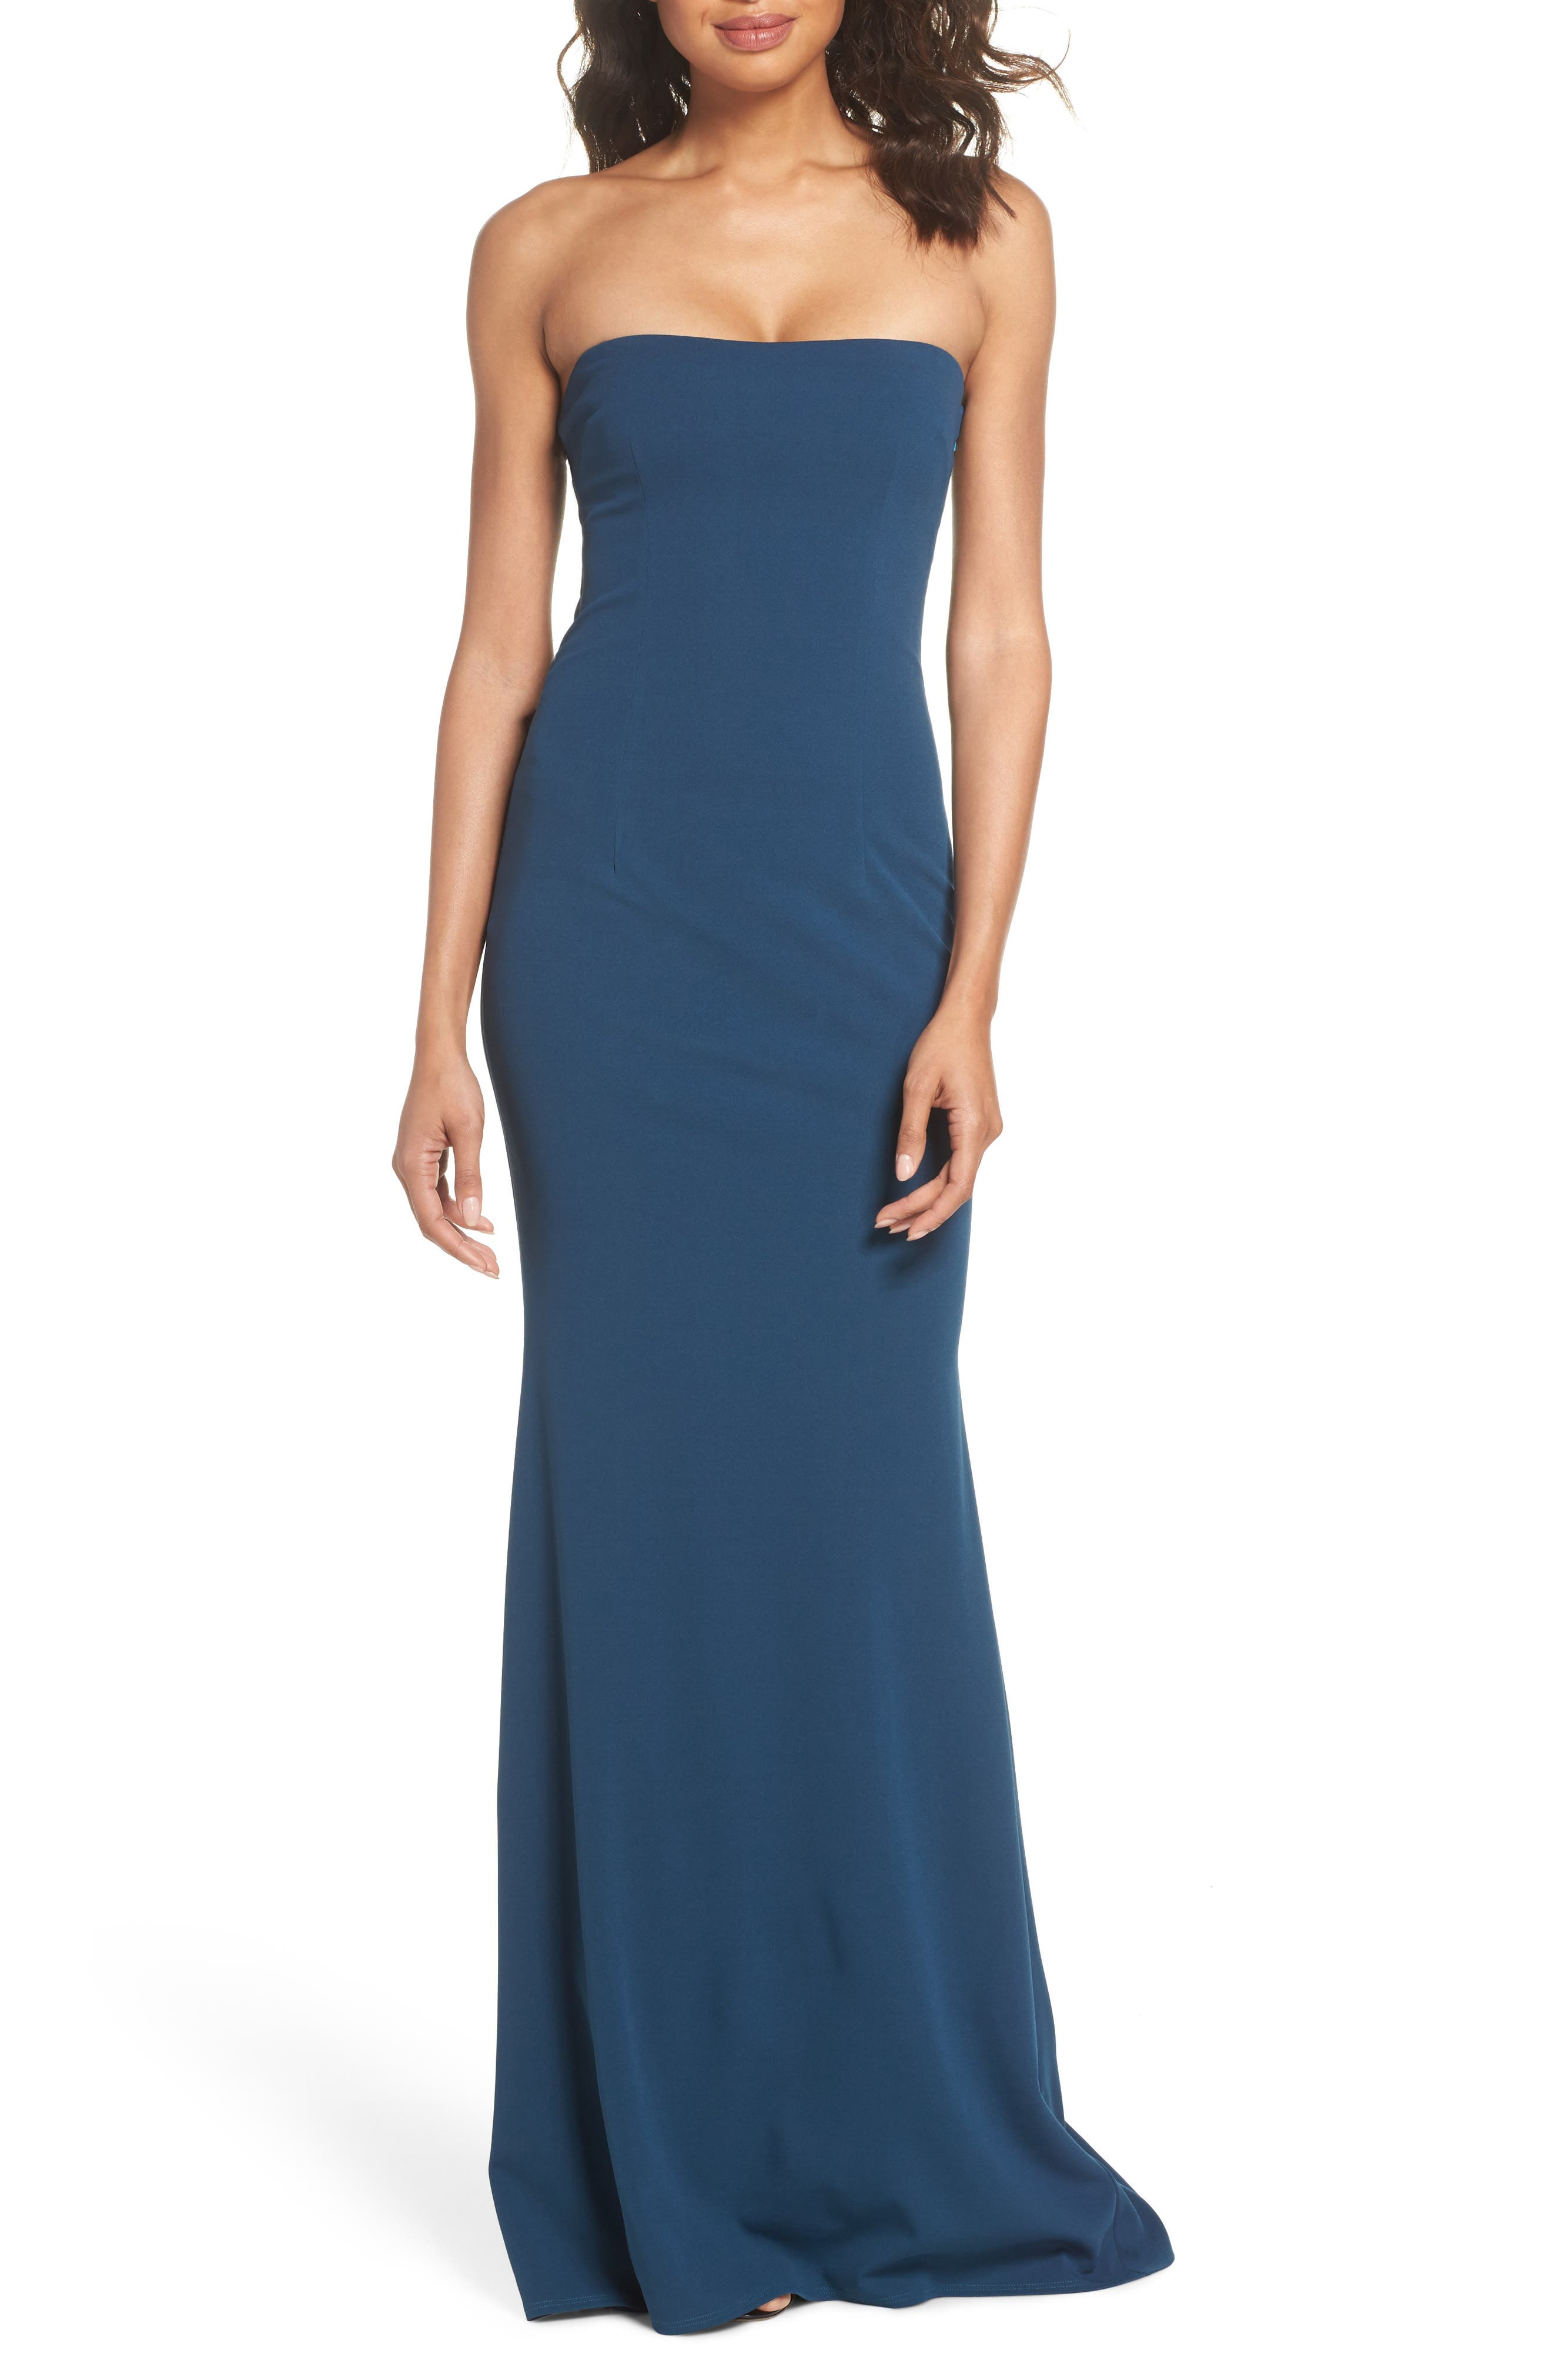 Mary Kate Strapless Cutout Back Gown,                             Main thumbnail 1, color,                             TEAL